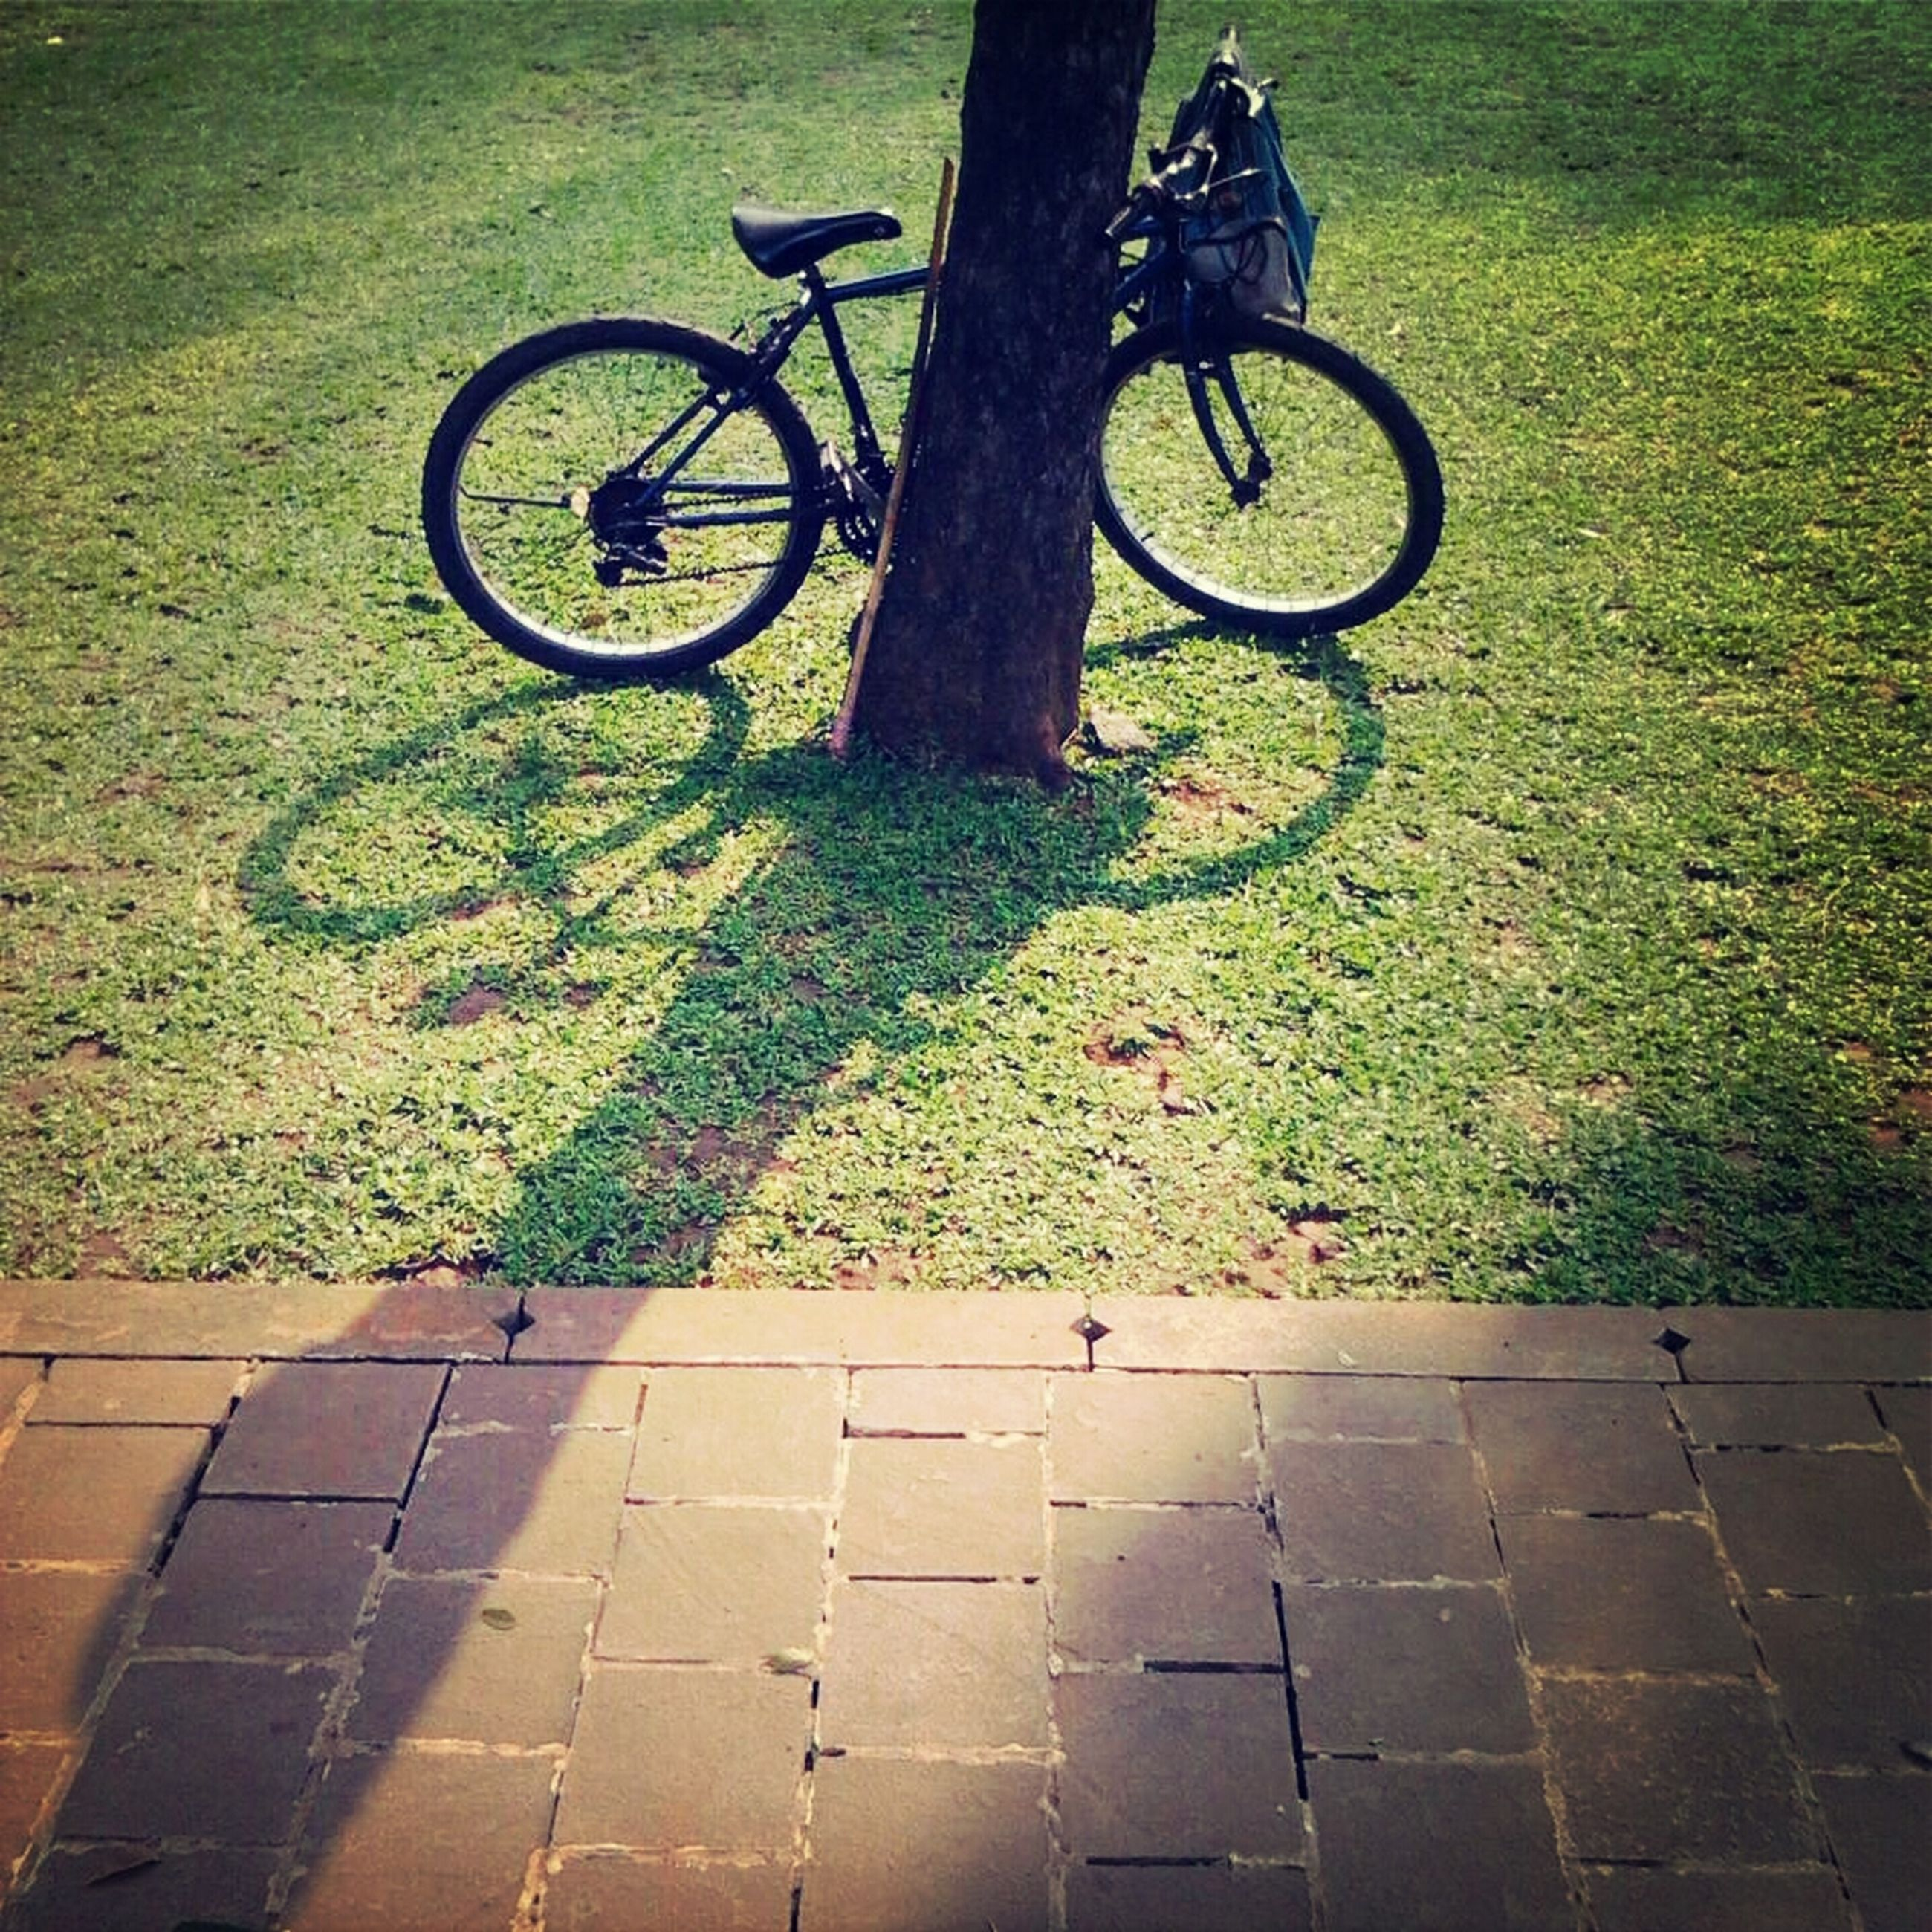 bicycle, transportation, land vehicle, street, mode of transport, cycling, grass, shadow, high angle view, road, sunlight, low section, riding, outdoors, wheel, leisure activity, day, lifestyles